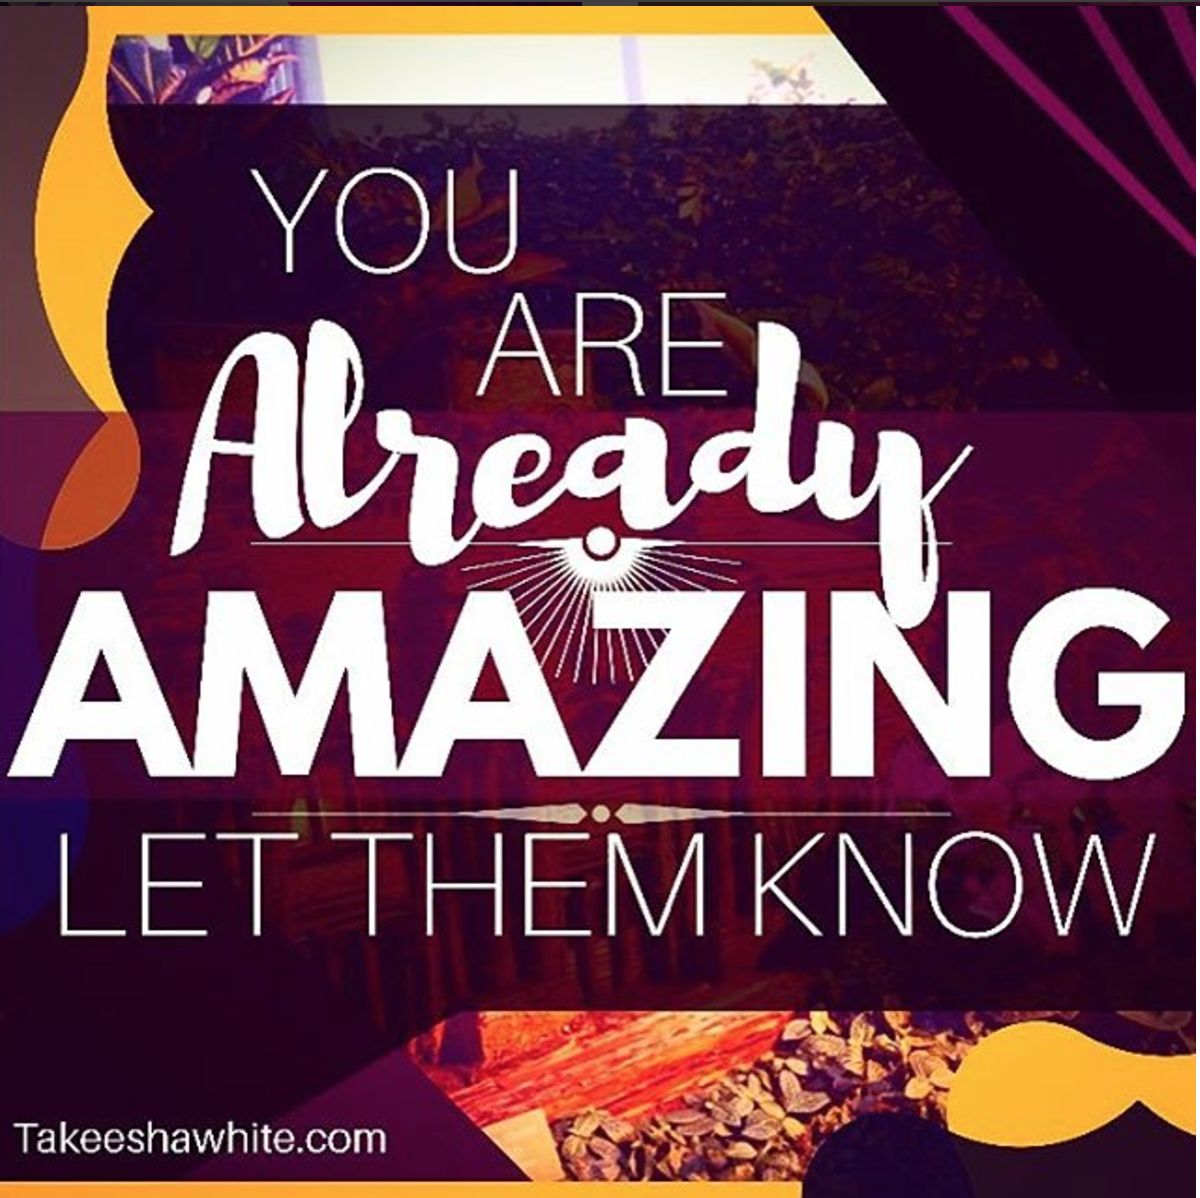 You Are Amazing Let Them Know